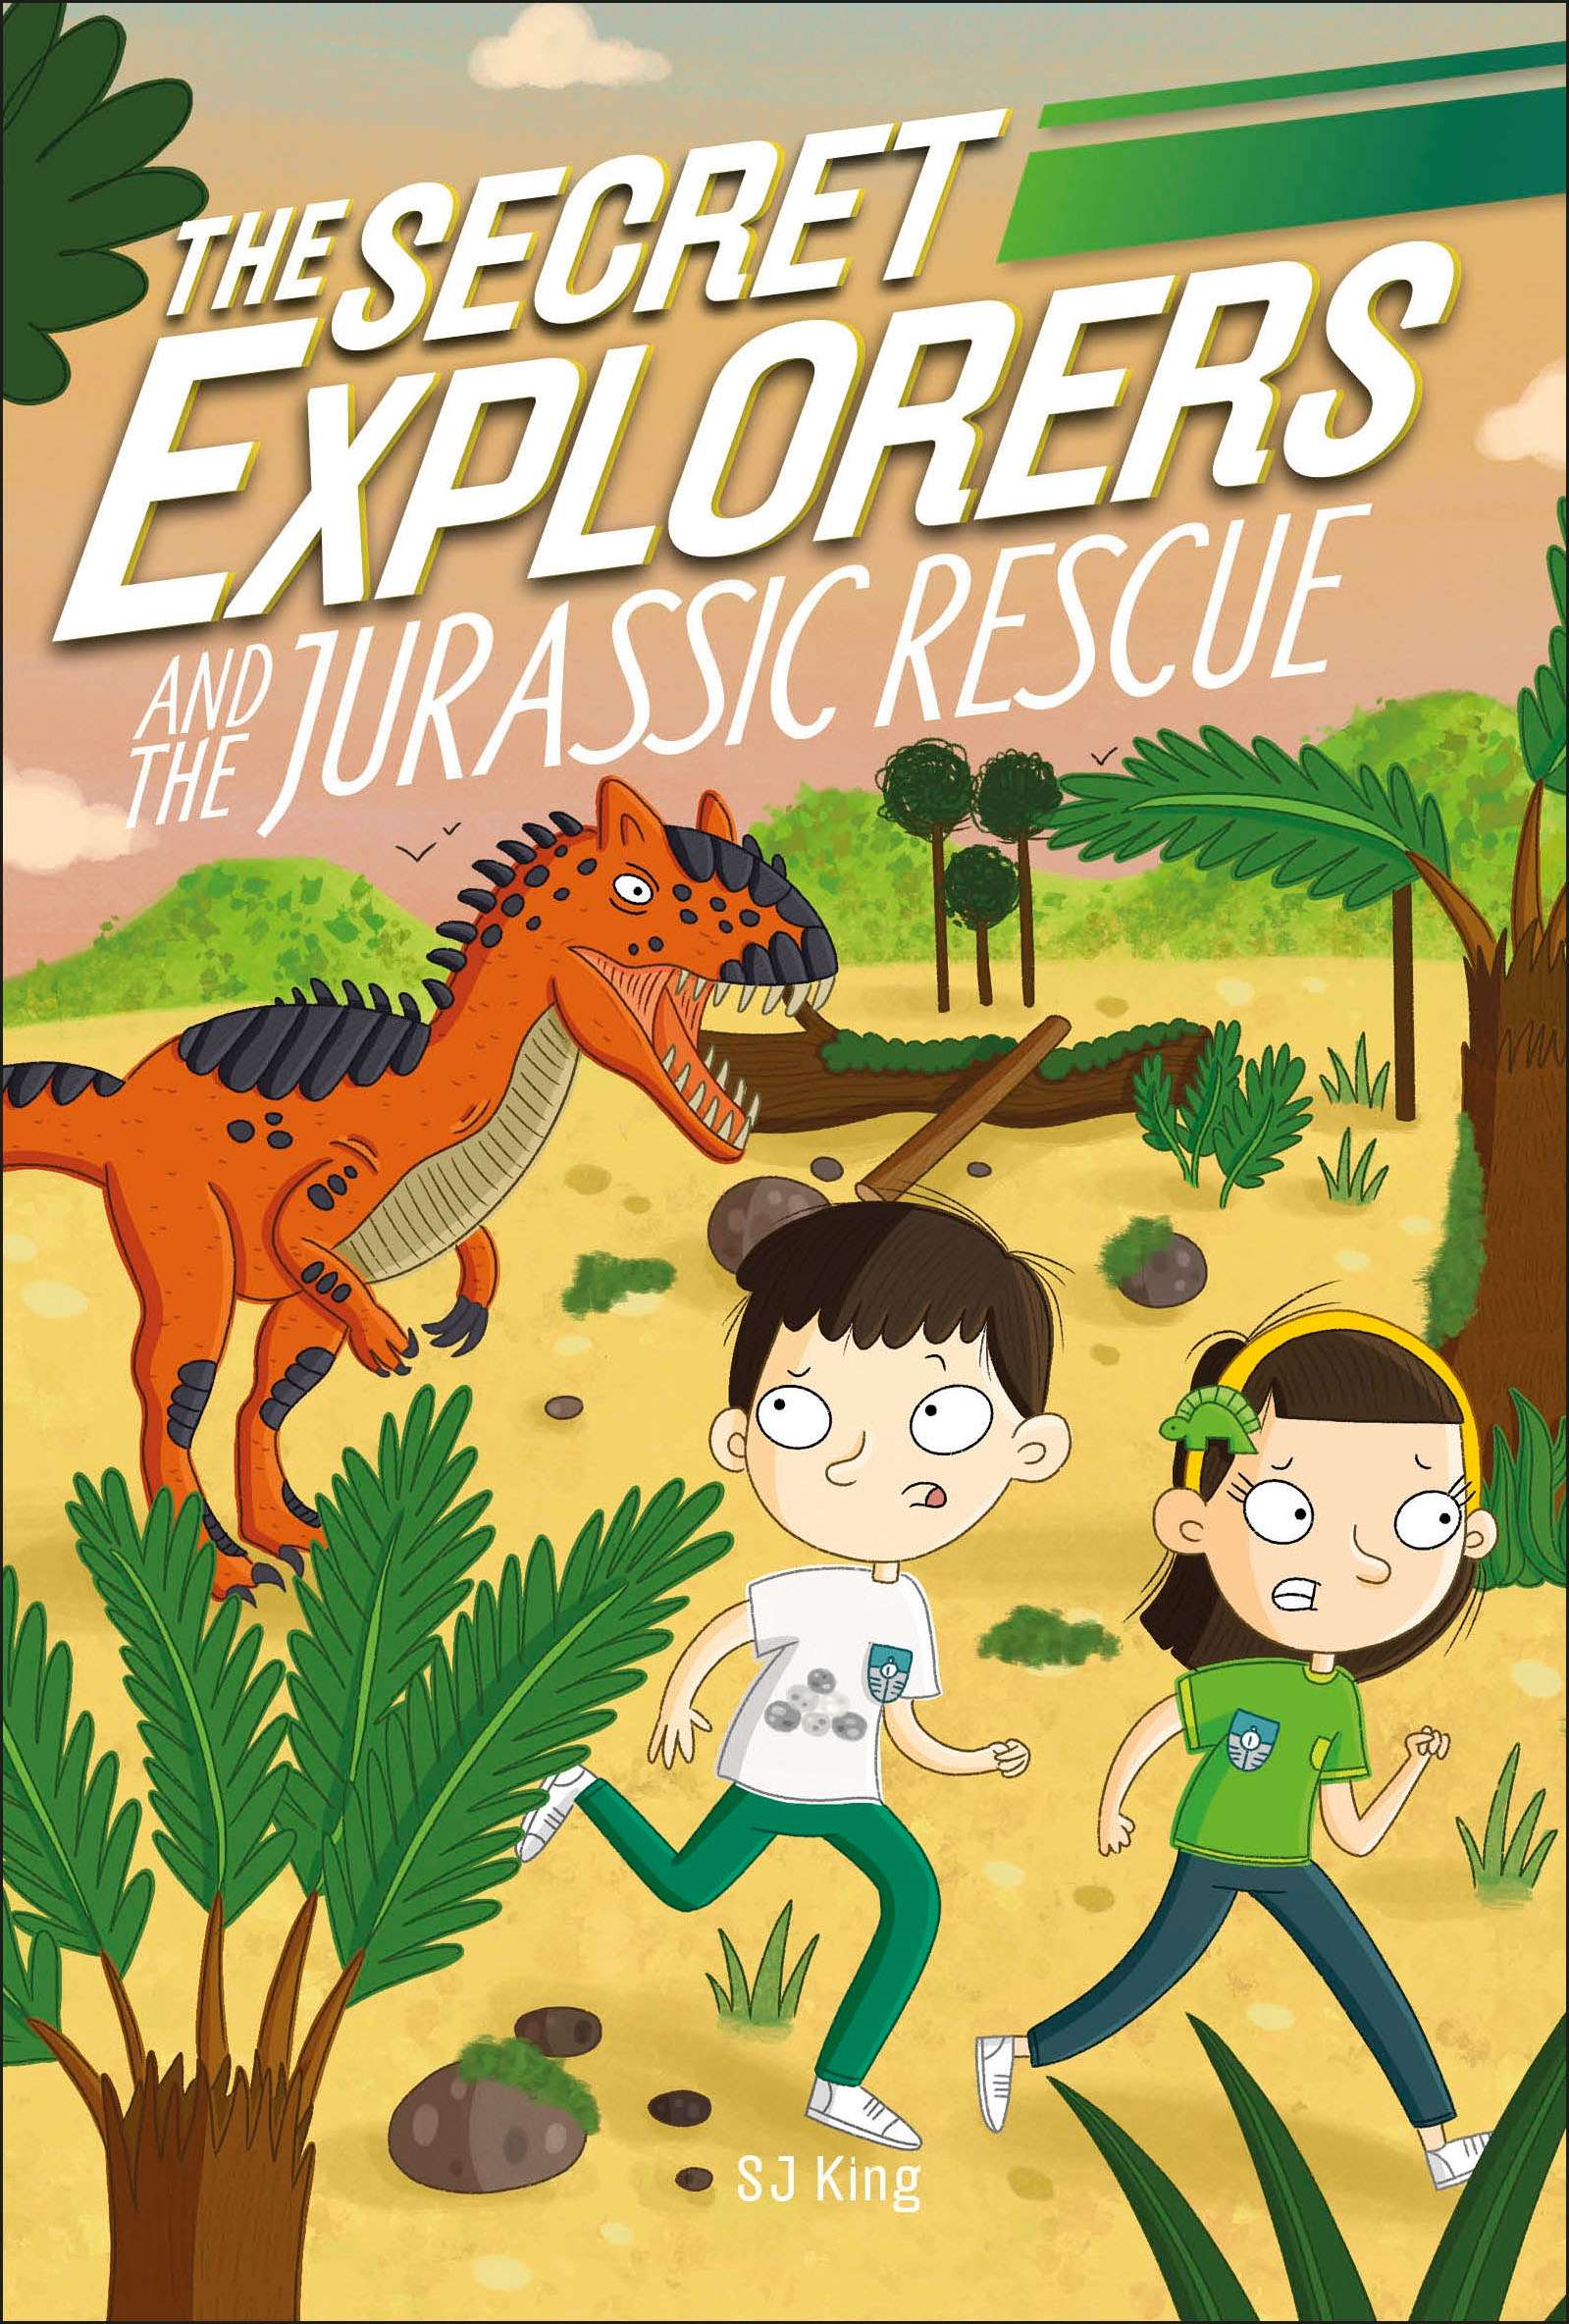 The Secret Explorers - The Secret Explorers and the Jurassic Rescue | 6-8 years old